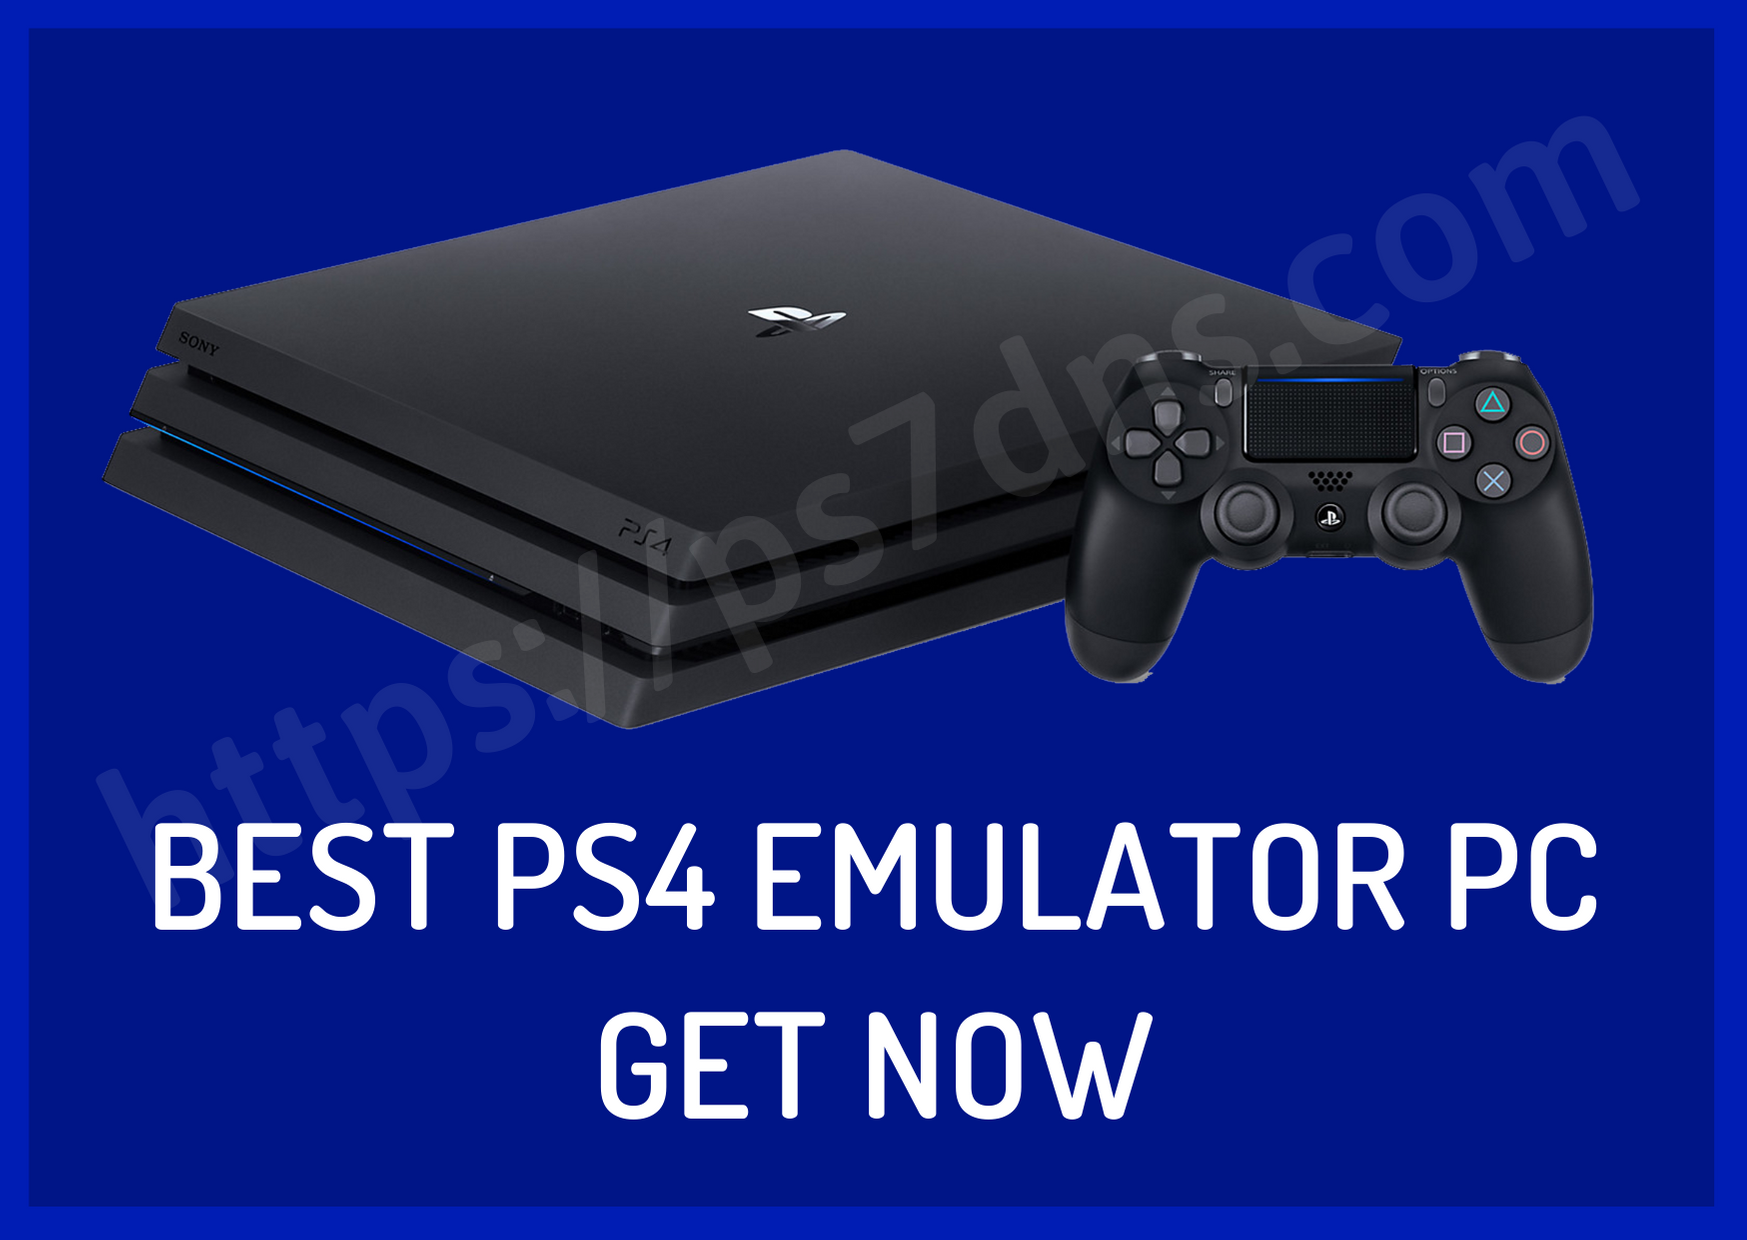 Best PS4 Emulator PC – Get Now